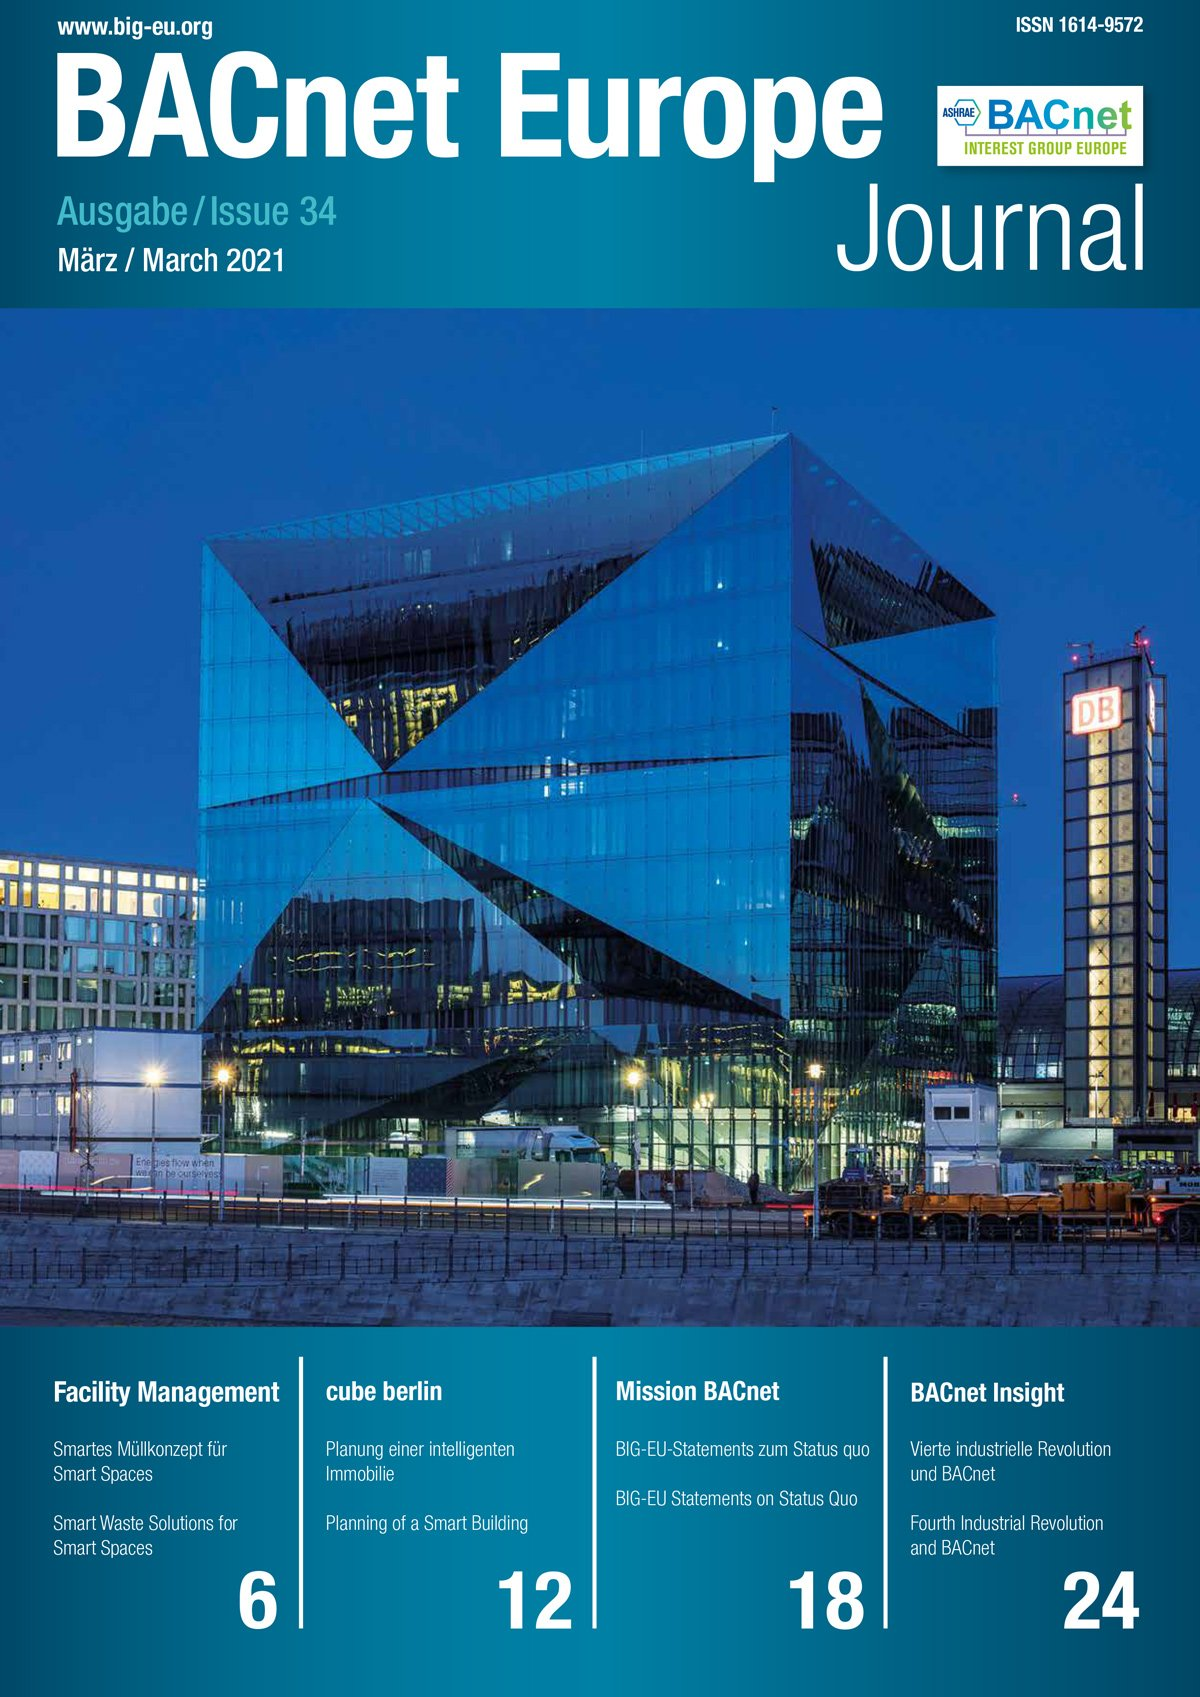 BACnet Europe Journal 34